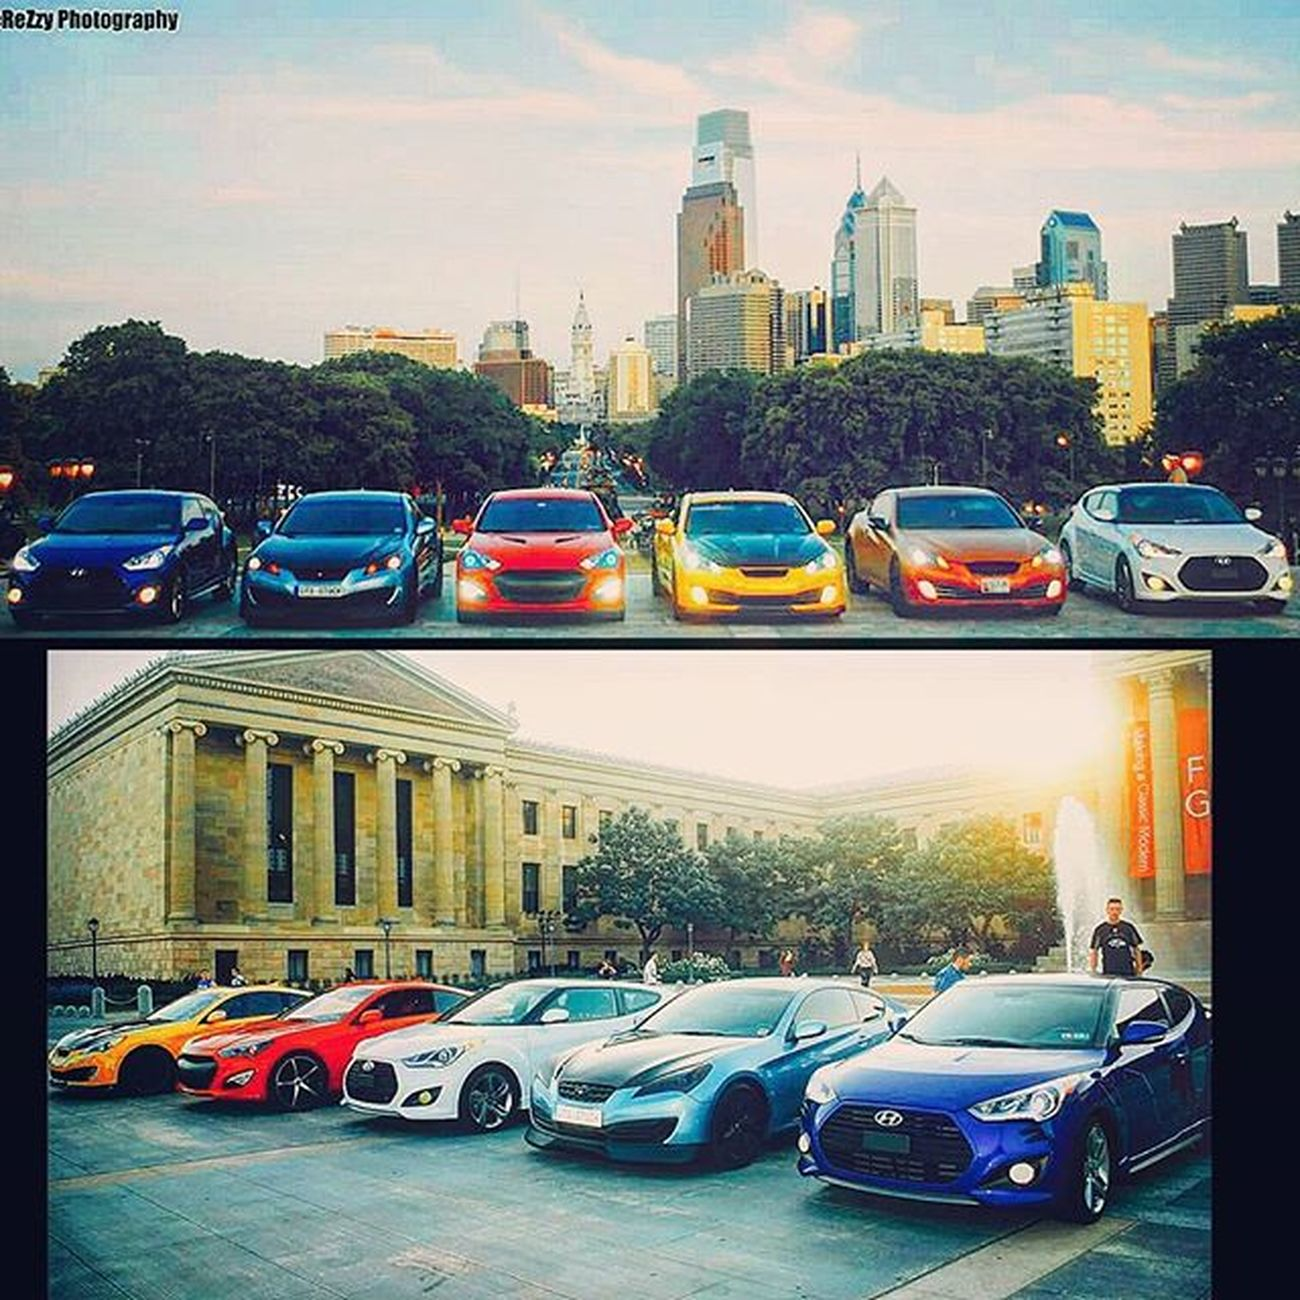 Can't wait to stunt this summer! Hyundai Hyundai_kdm Kdm Veloster Velosterturbo Hatchsociety Velosternation Variantvelosters Kdmloyalty Kdmkings Veloster_addicts Gencoupe Genesiscoupe Genny Gencoupenation Gencoupelove Philadelphia Artmuseum Carsaremodernart